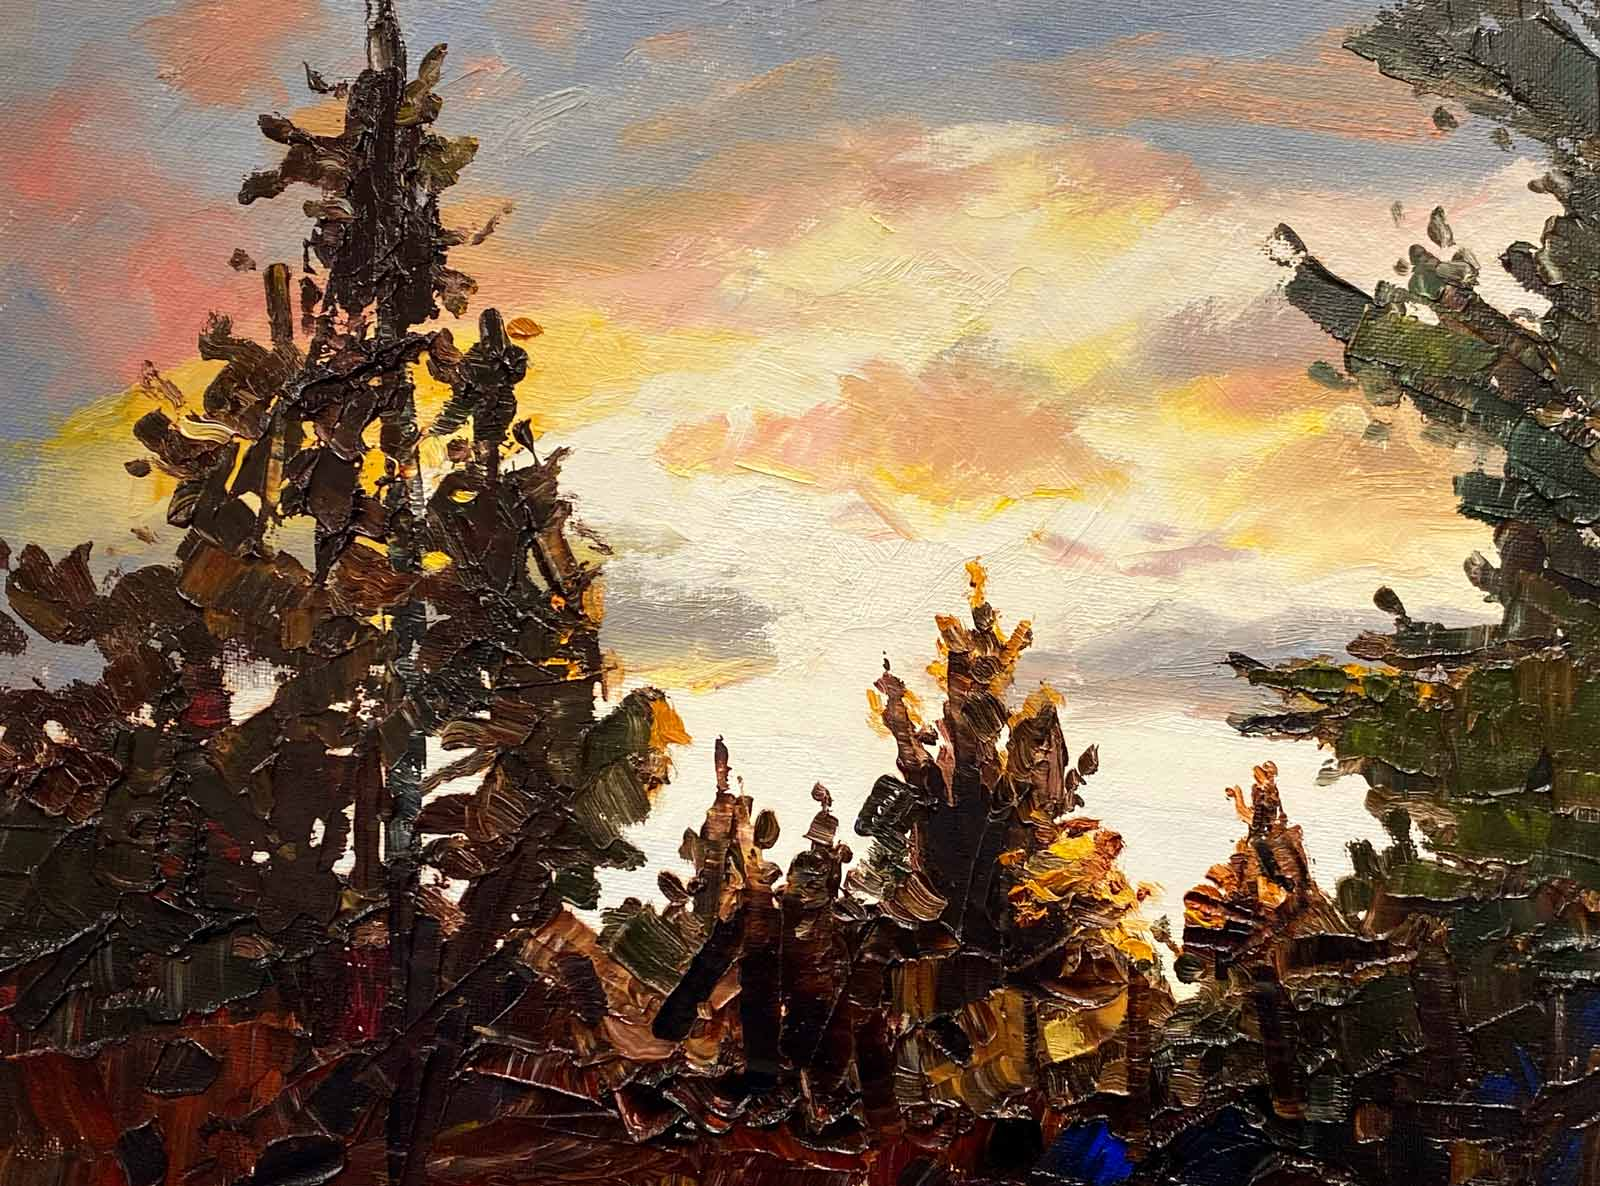 Original oil painting by Shelly Wierzba of pine trees silhouetted by an Oregon sunset